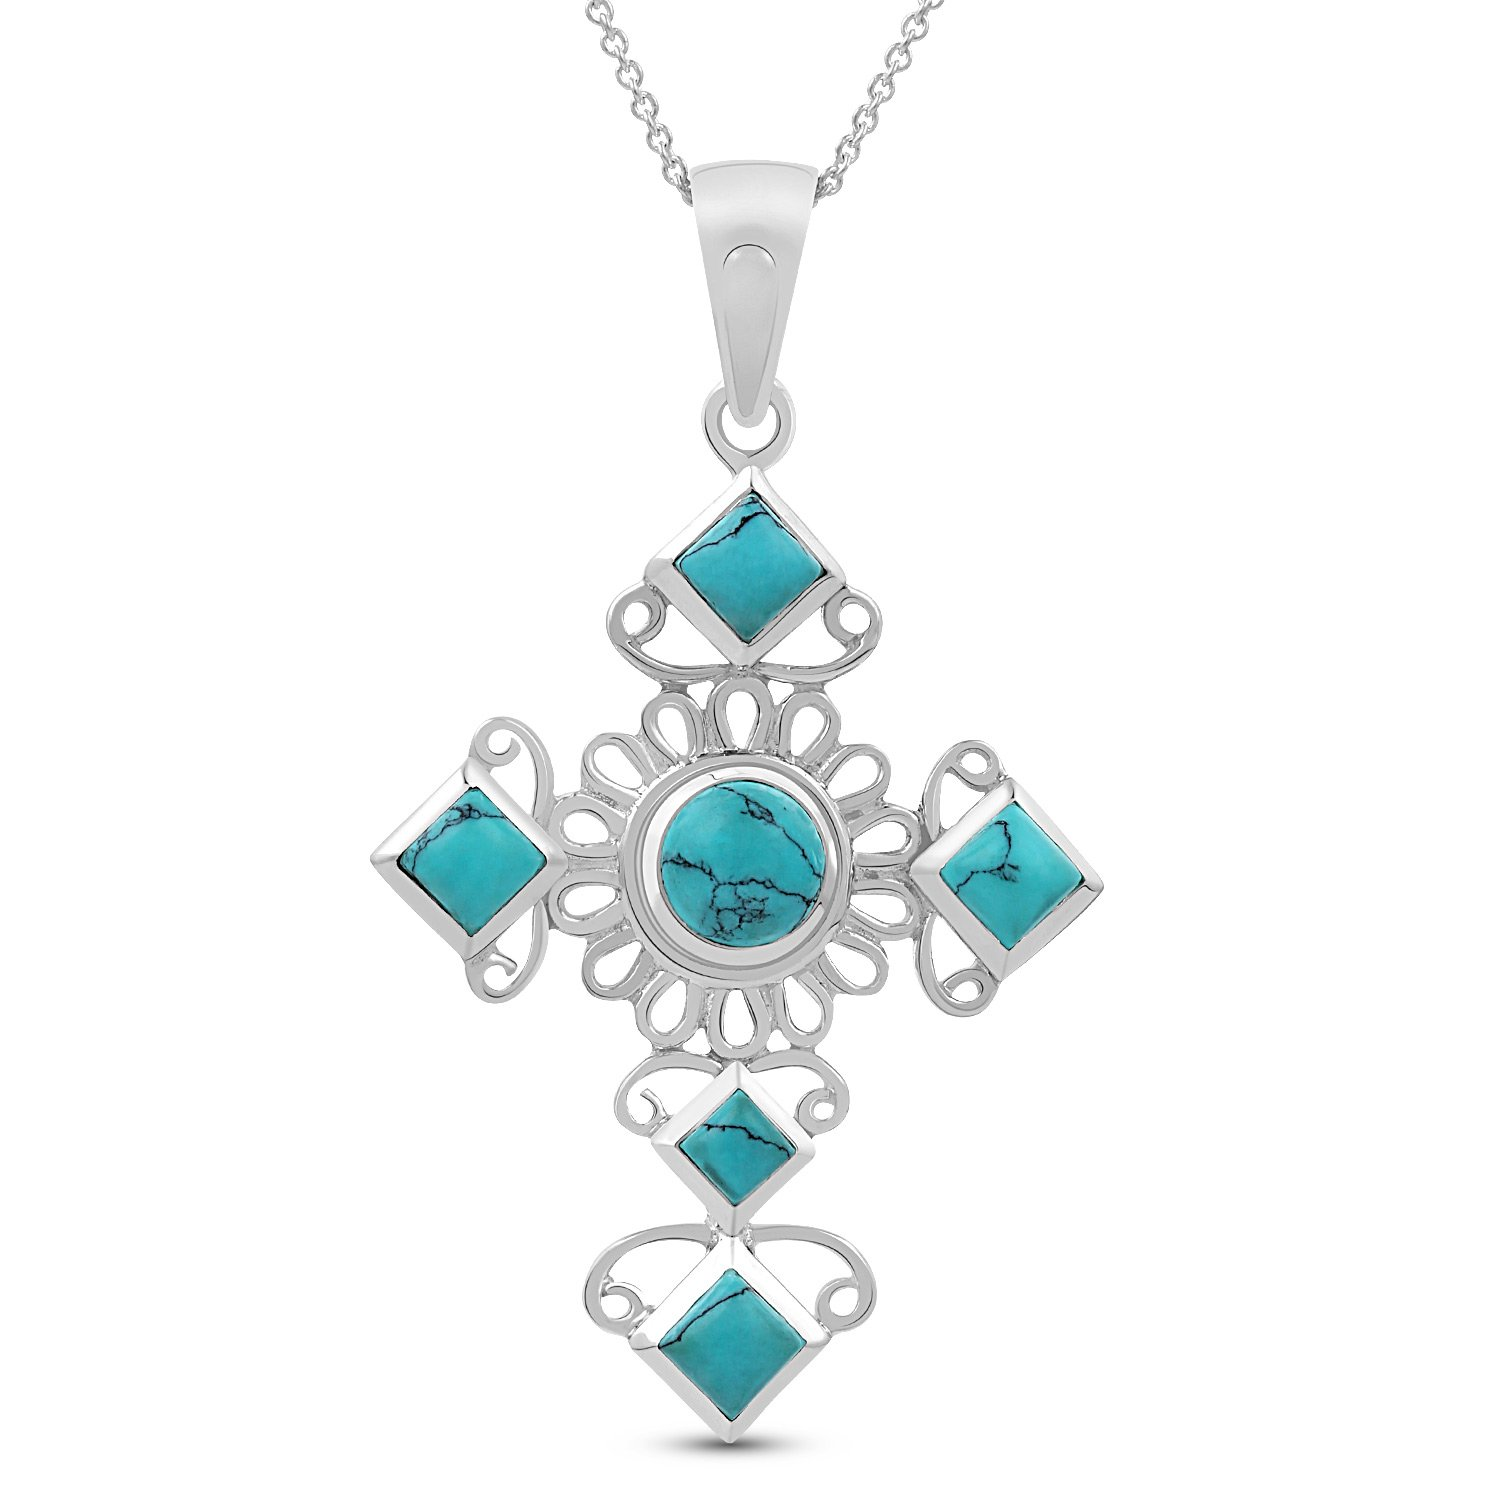 Cross Turquoise Pendant - .925 Sterling Silver Jewelry